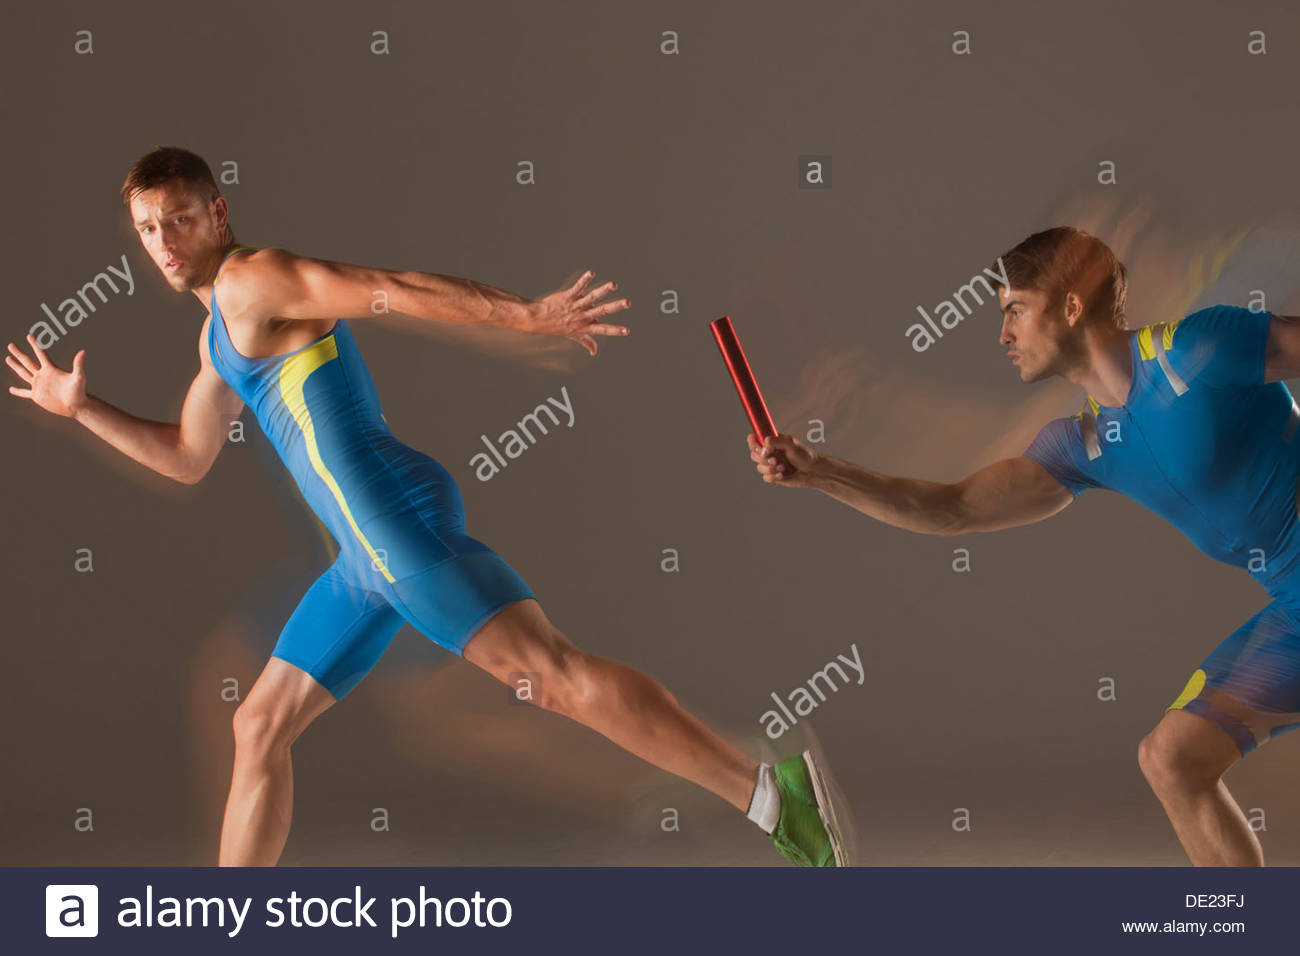 Blurred view of athletes passing baton - Stock Image